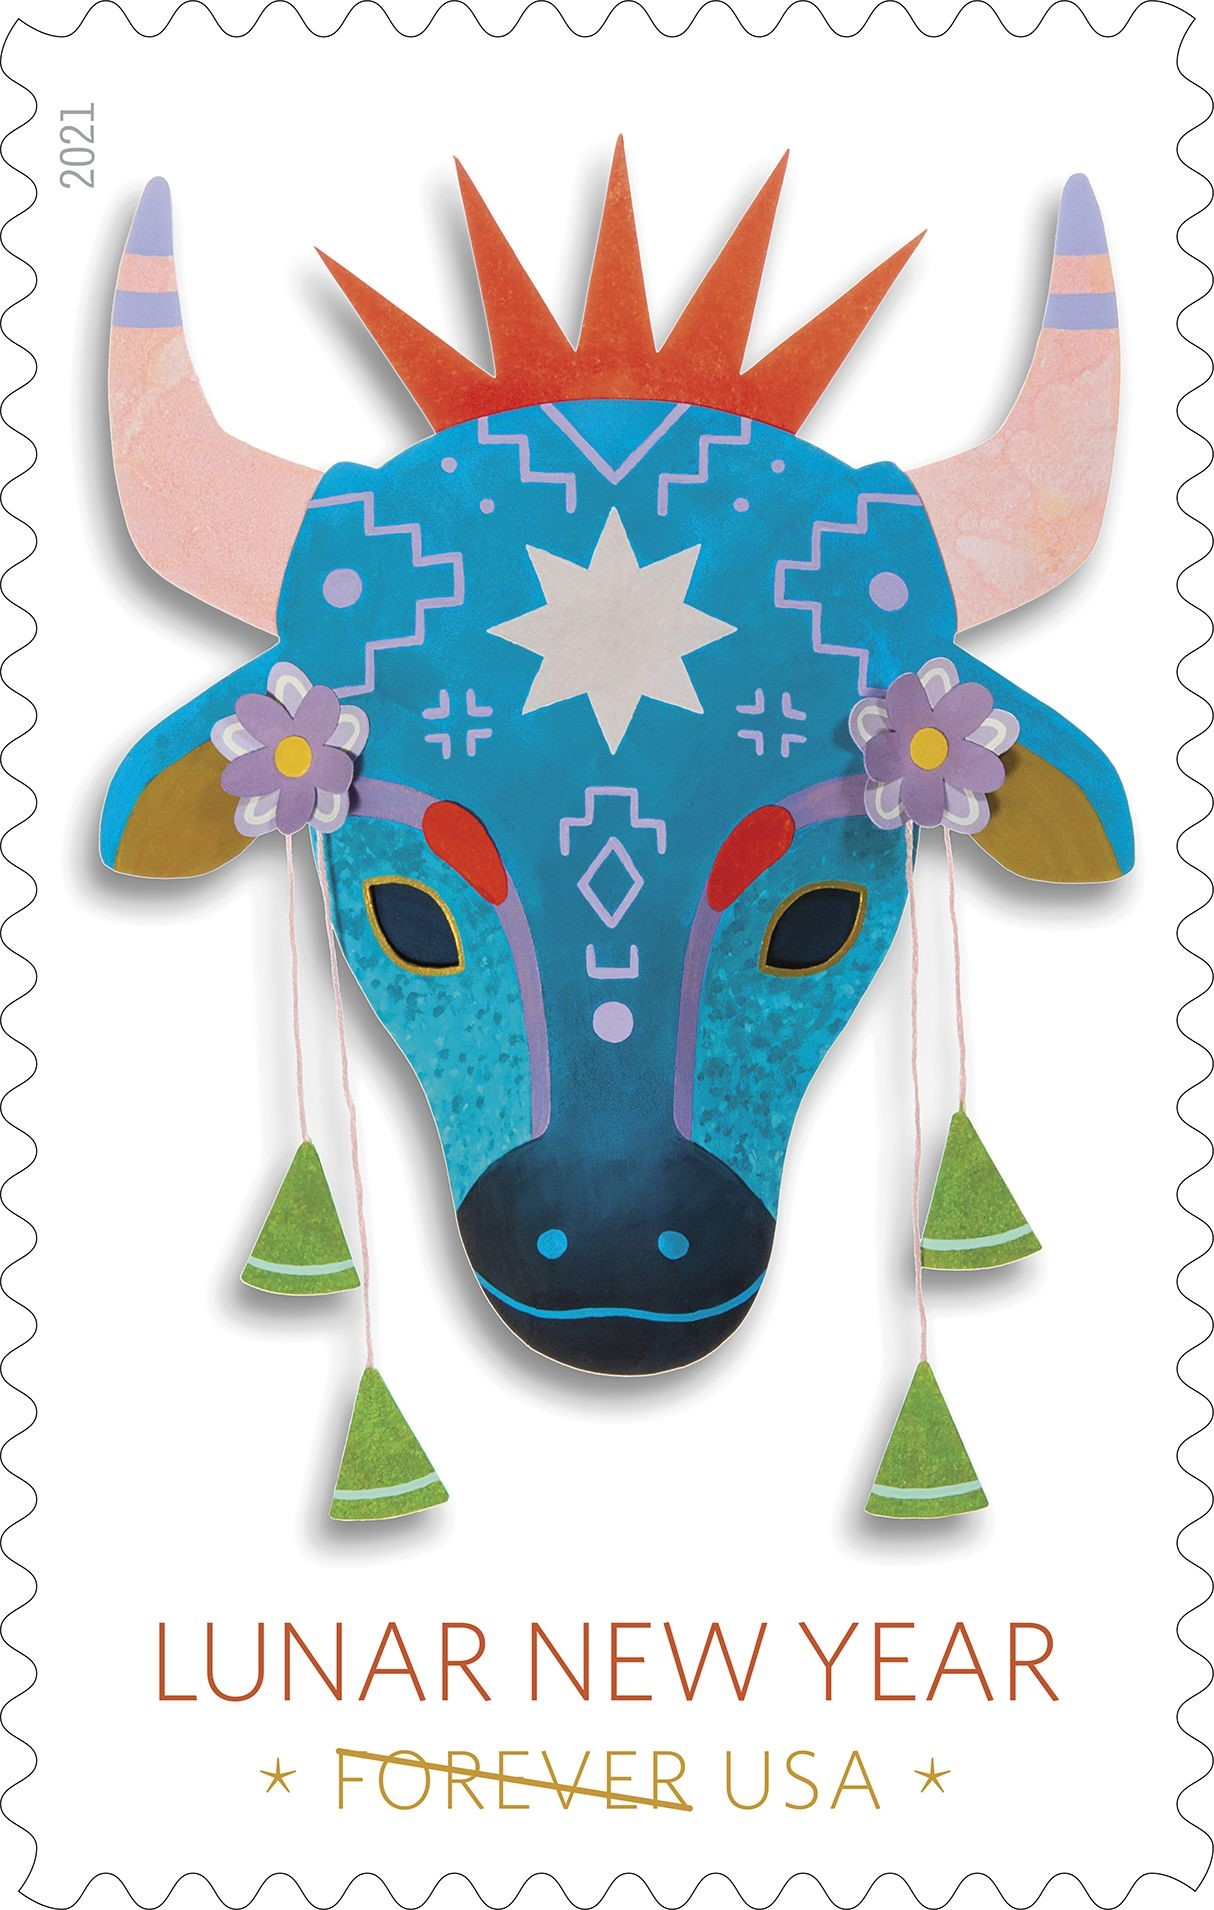 Us Mail 2021 Christmas Stamp Styles Forever Stamps 7sgff Hq9ifv7m